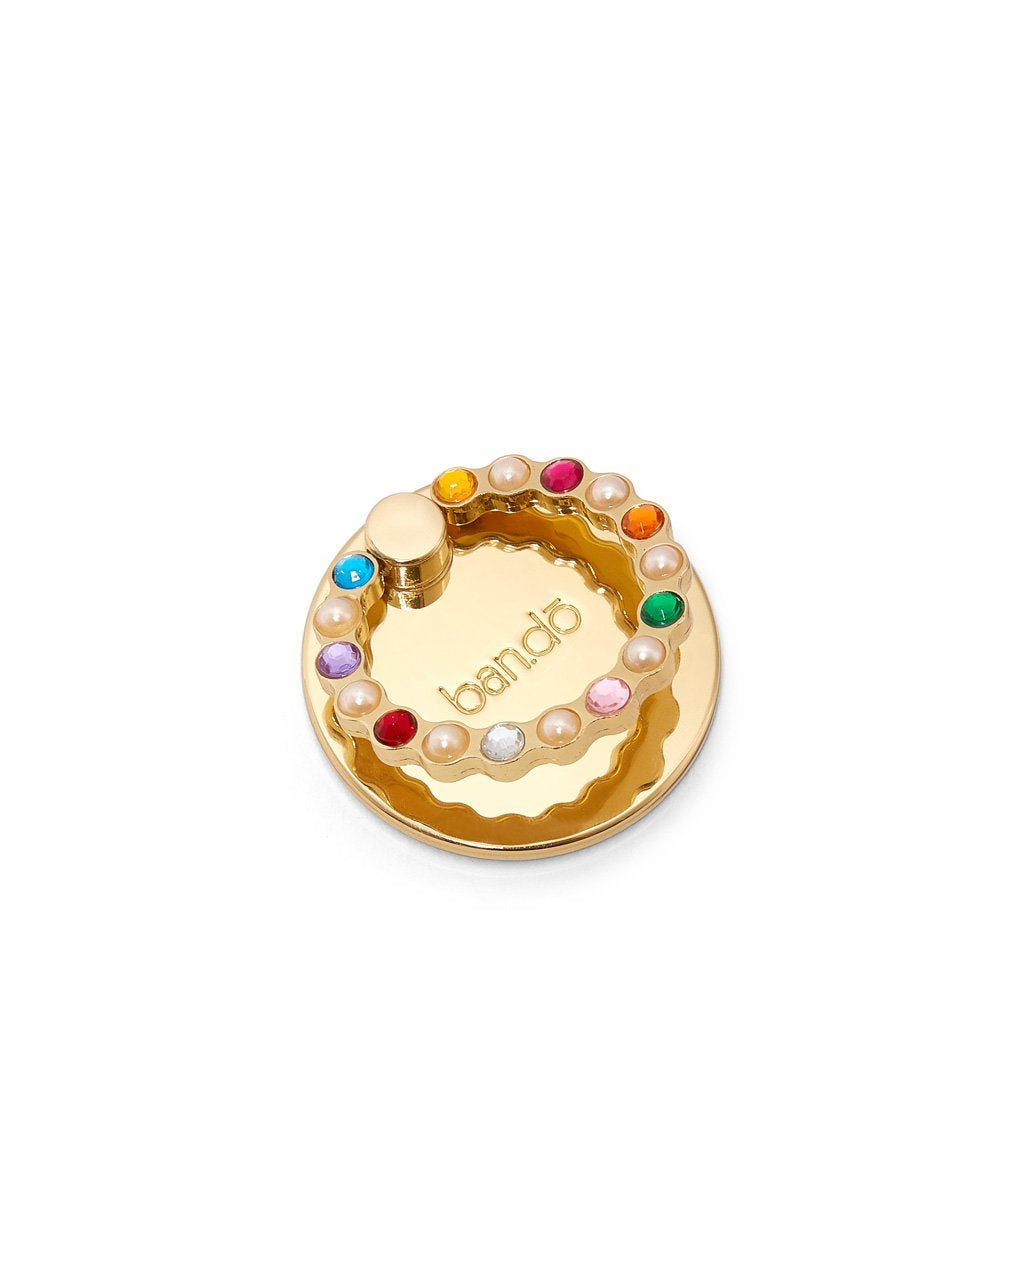 Tech ring with gems and pearls attached to the ring